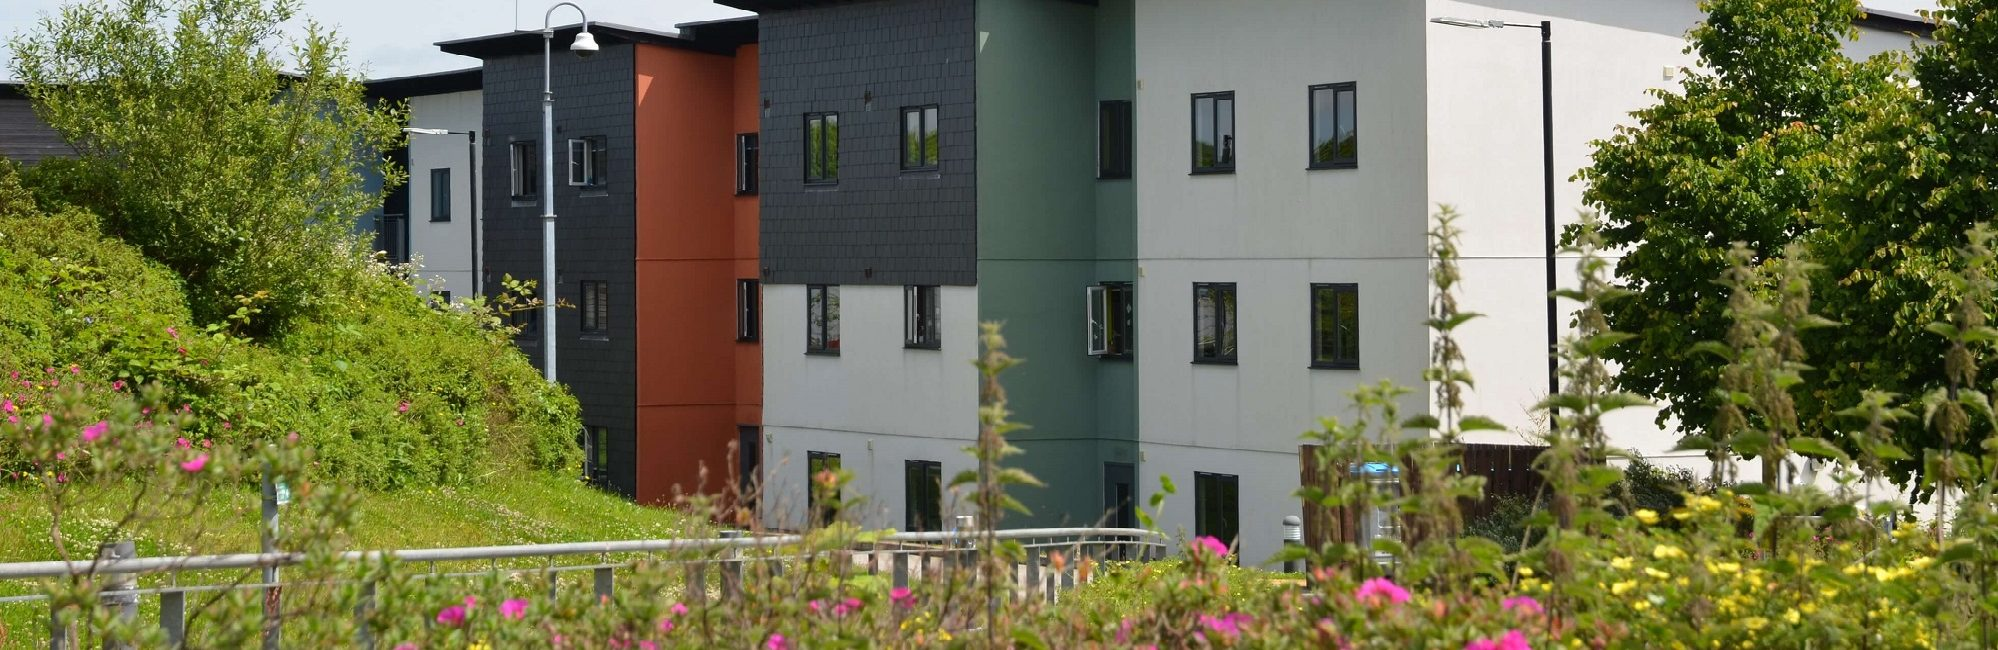 Glasney Rooms and Flats